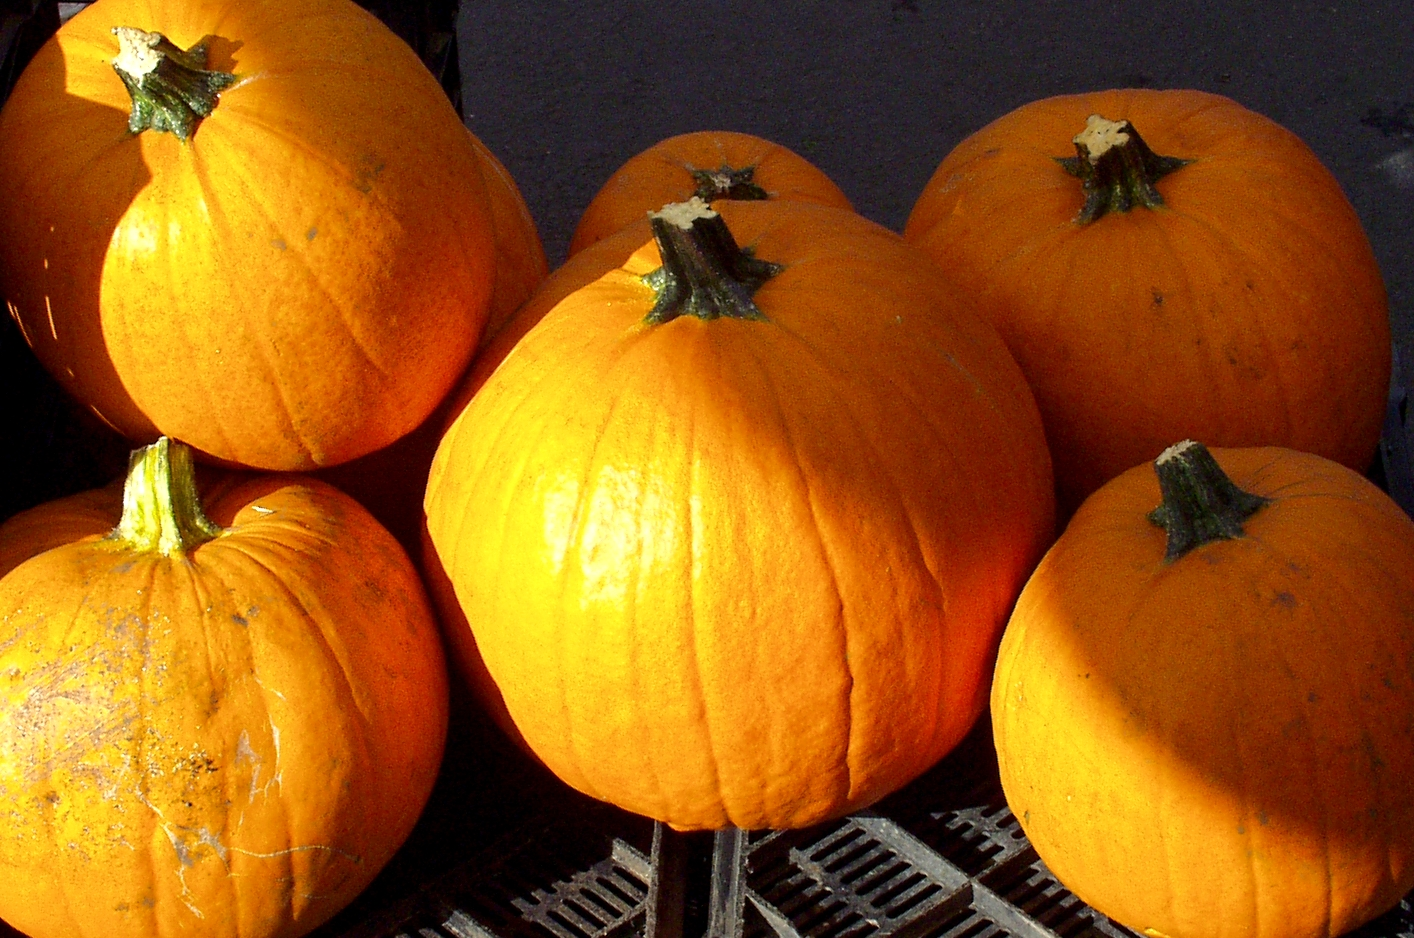 Curving pumpkins from Stoney Plains. Photo copyright 2009 by Zachary D. Lyons.